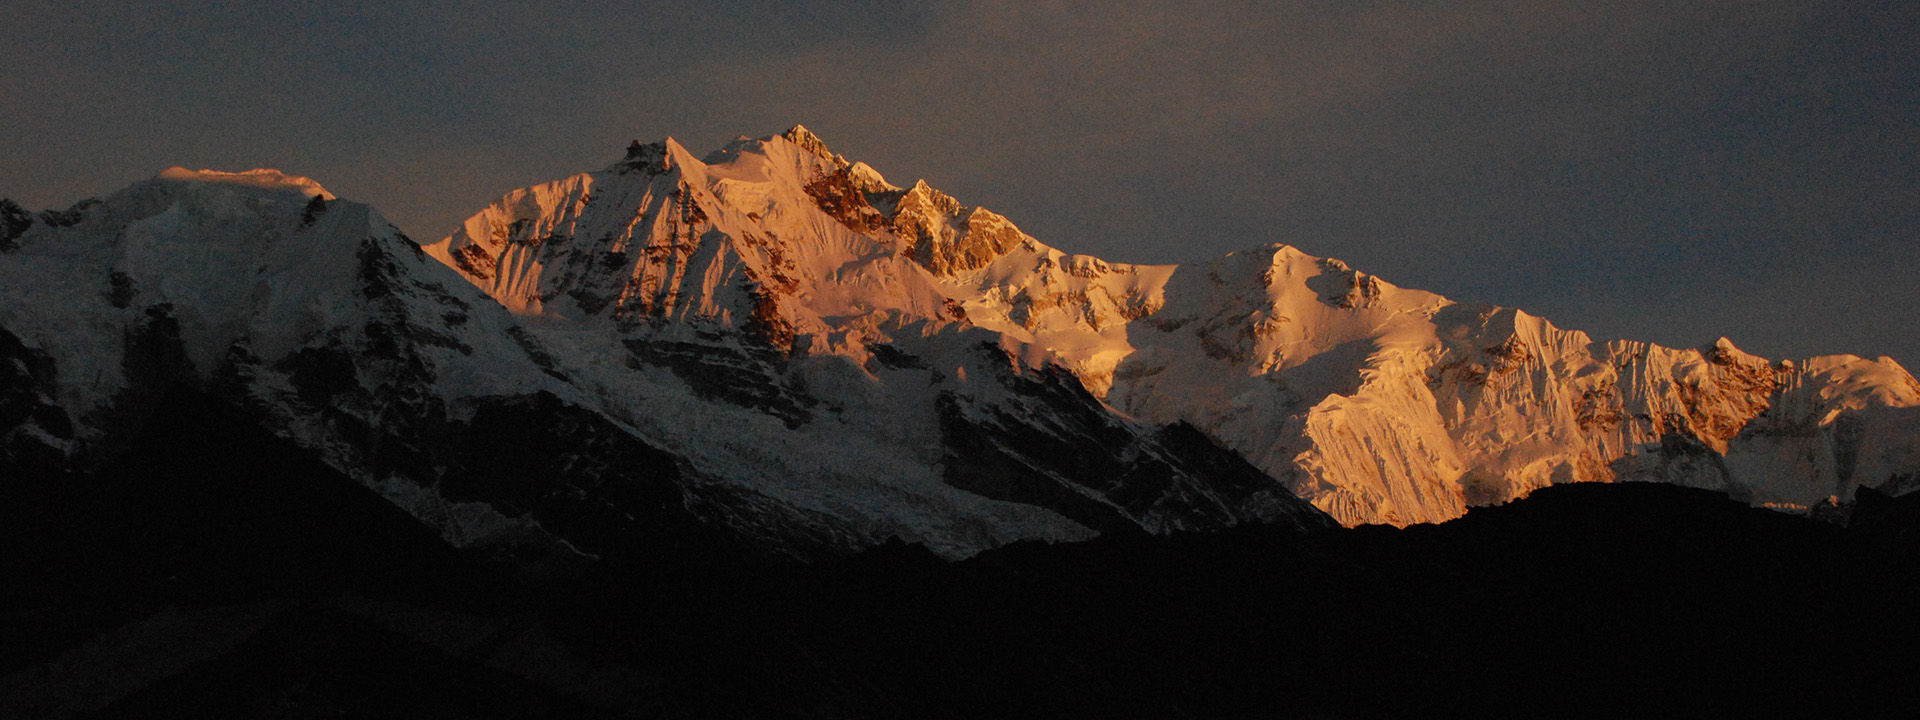 Witness the glory of majestic Kanchenjunga by availing the North Sikkim Tour Packages